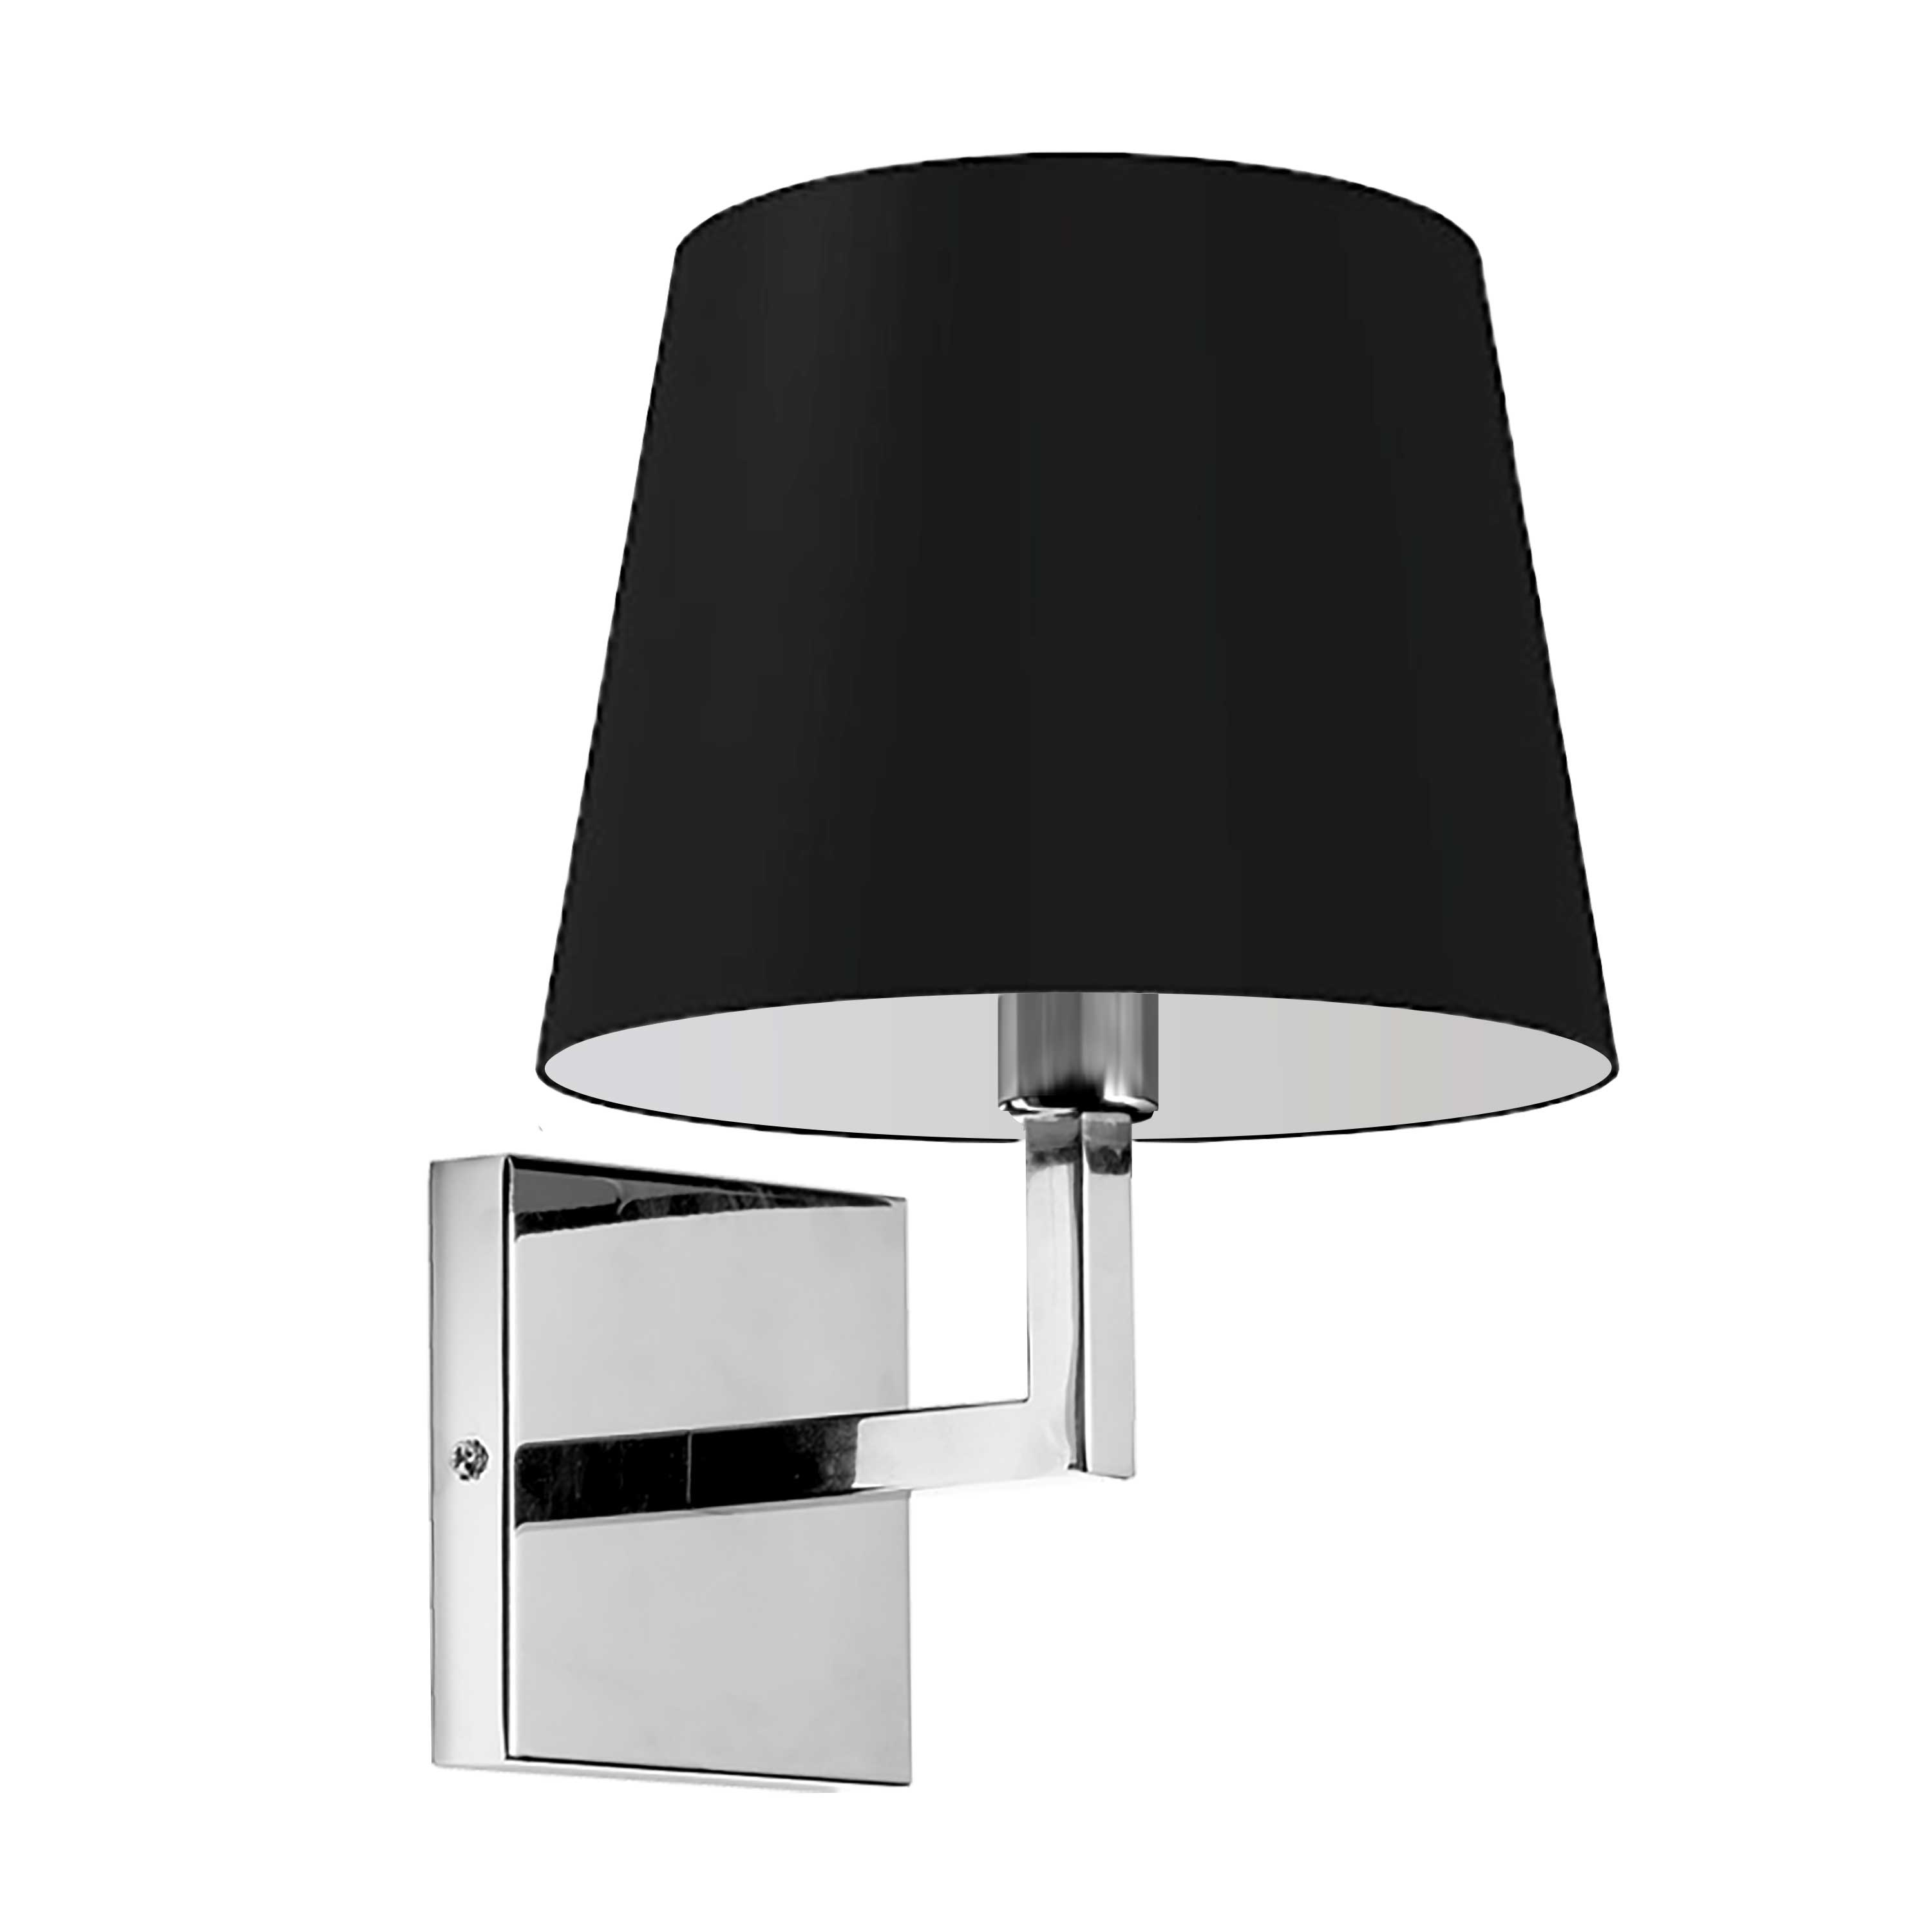 1LT Incandescent Wall Sconce,  PC w/ Black Shade